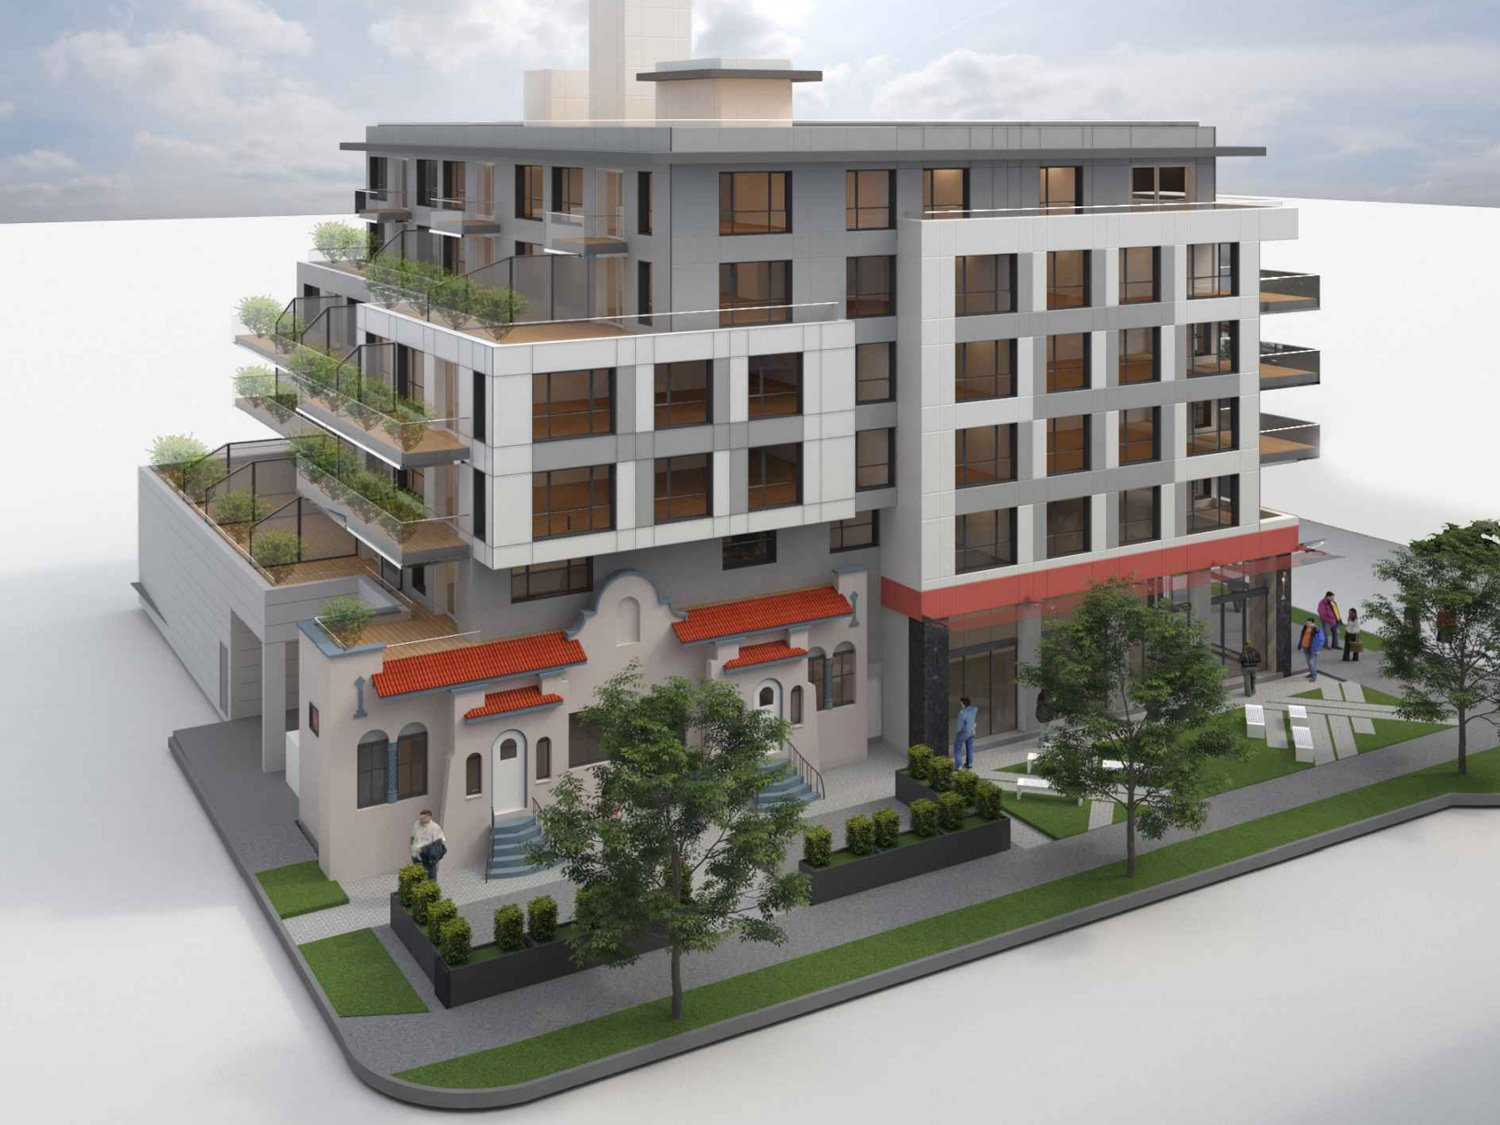 Façade will be retained in East Hastings and Penticton rental redevelopment